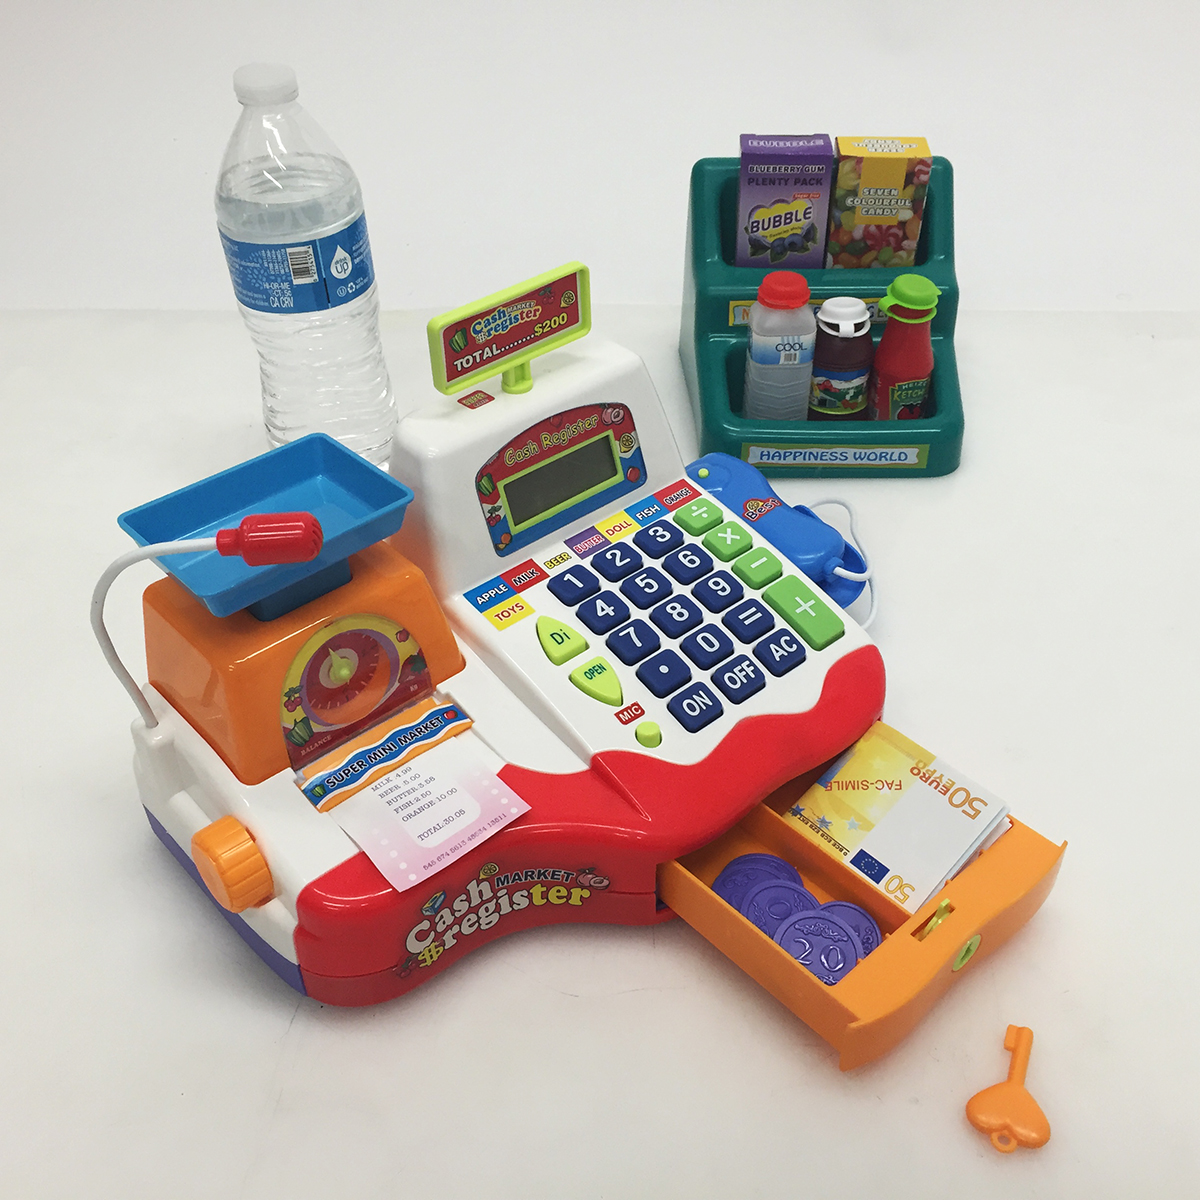 supermarket cash register toy how to open if stuck